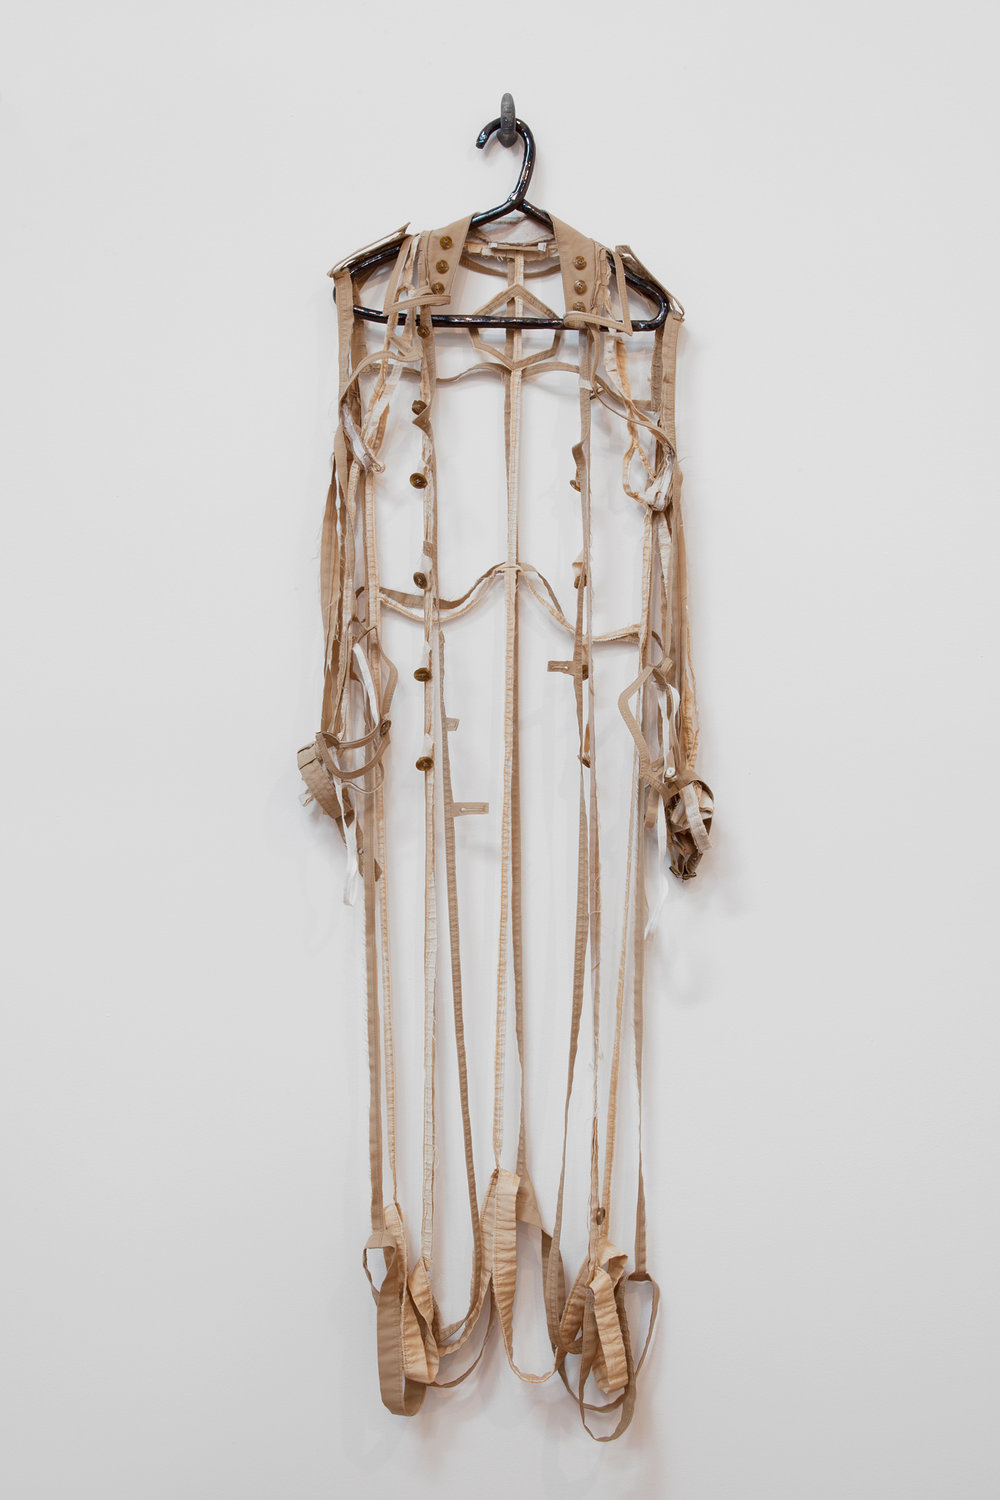 "ANNA SEW HOY   beige/tan , fired stoneware, trench coat and resin finger hook, 62.5"" x 17"" x 4"", 2012"